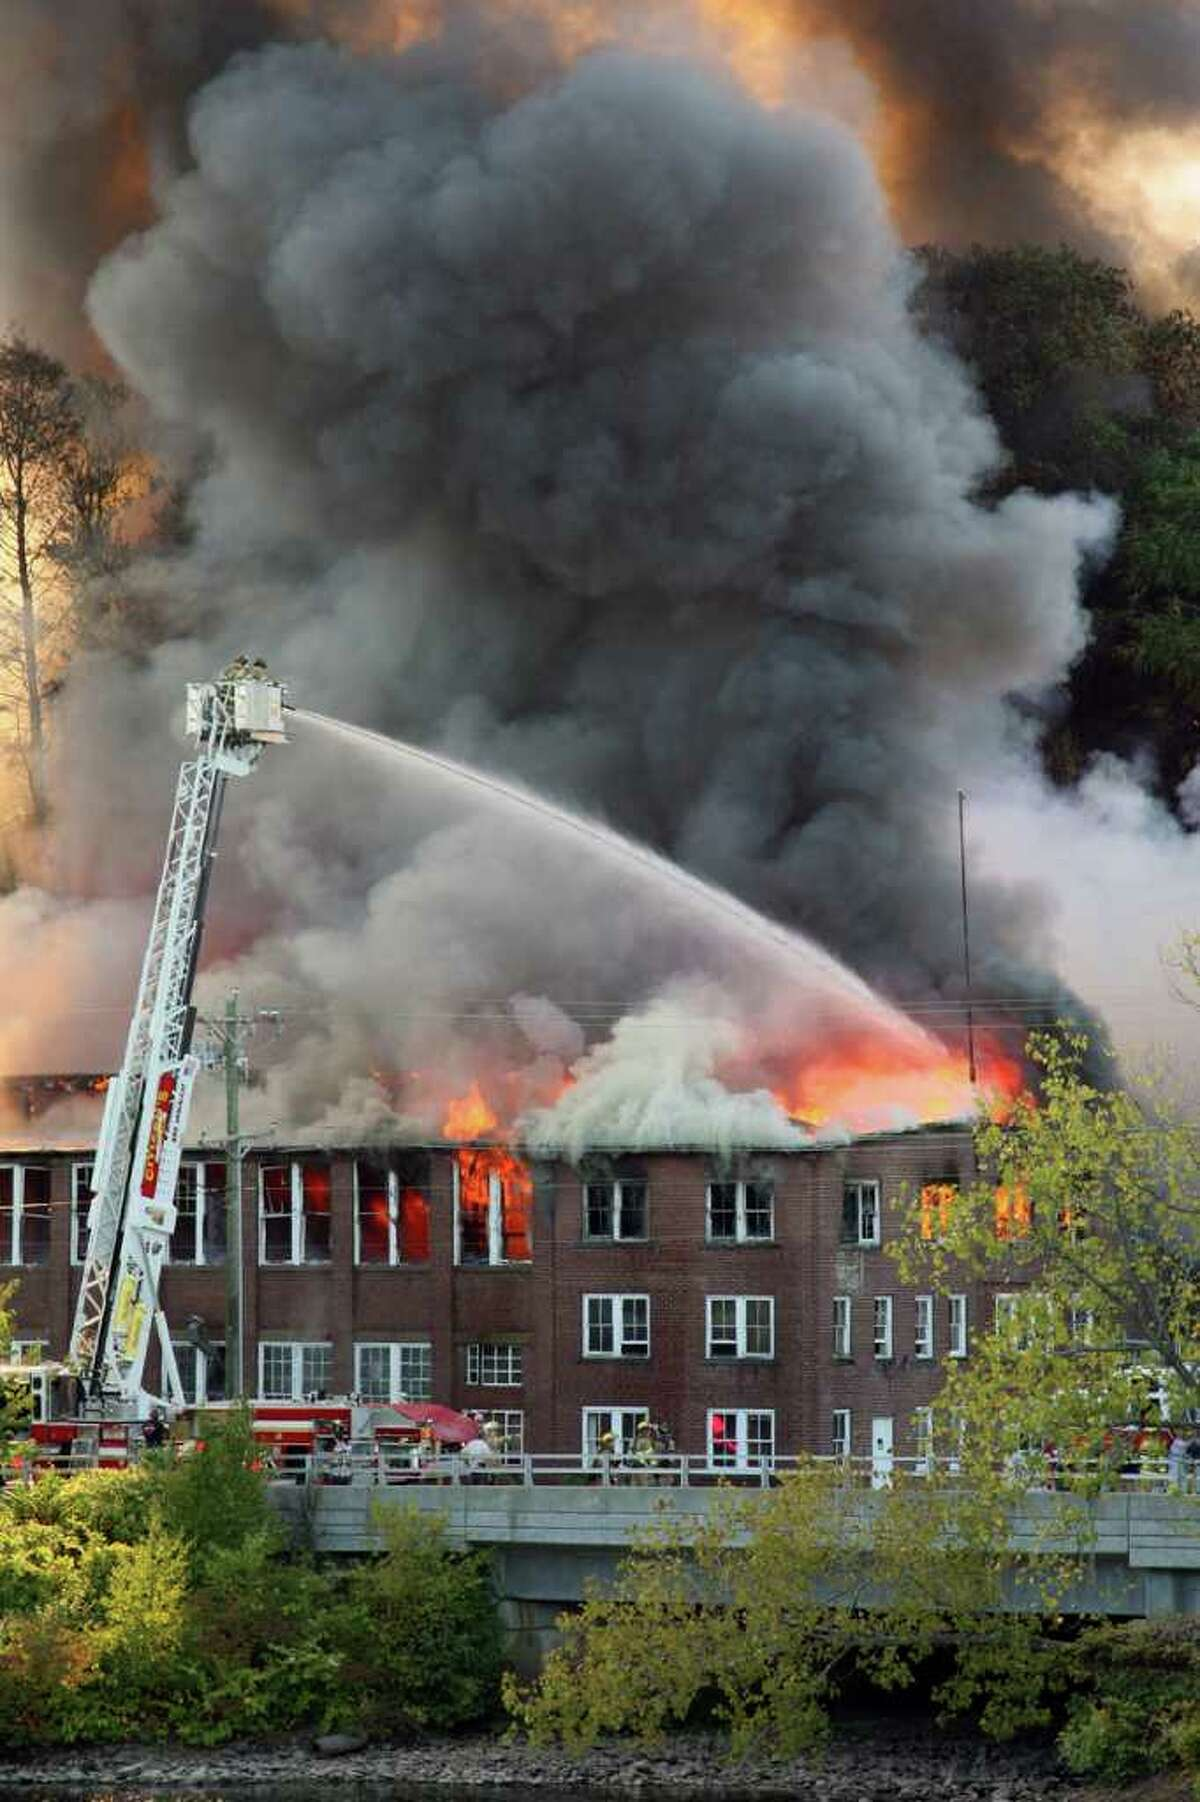 A raging fire ravaged the vacant Housatonic Wire factory complex on River Street. Sept. 11, 2010 Fire destroys the Housatonic Wire complex in Seymour. The building was slated to be the site of a new development. Read more.